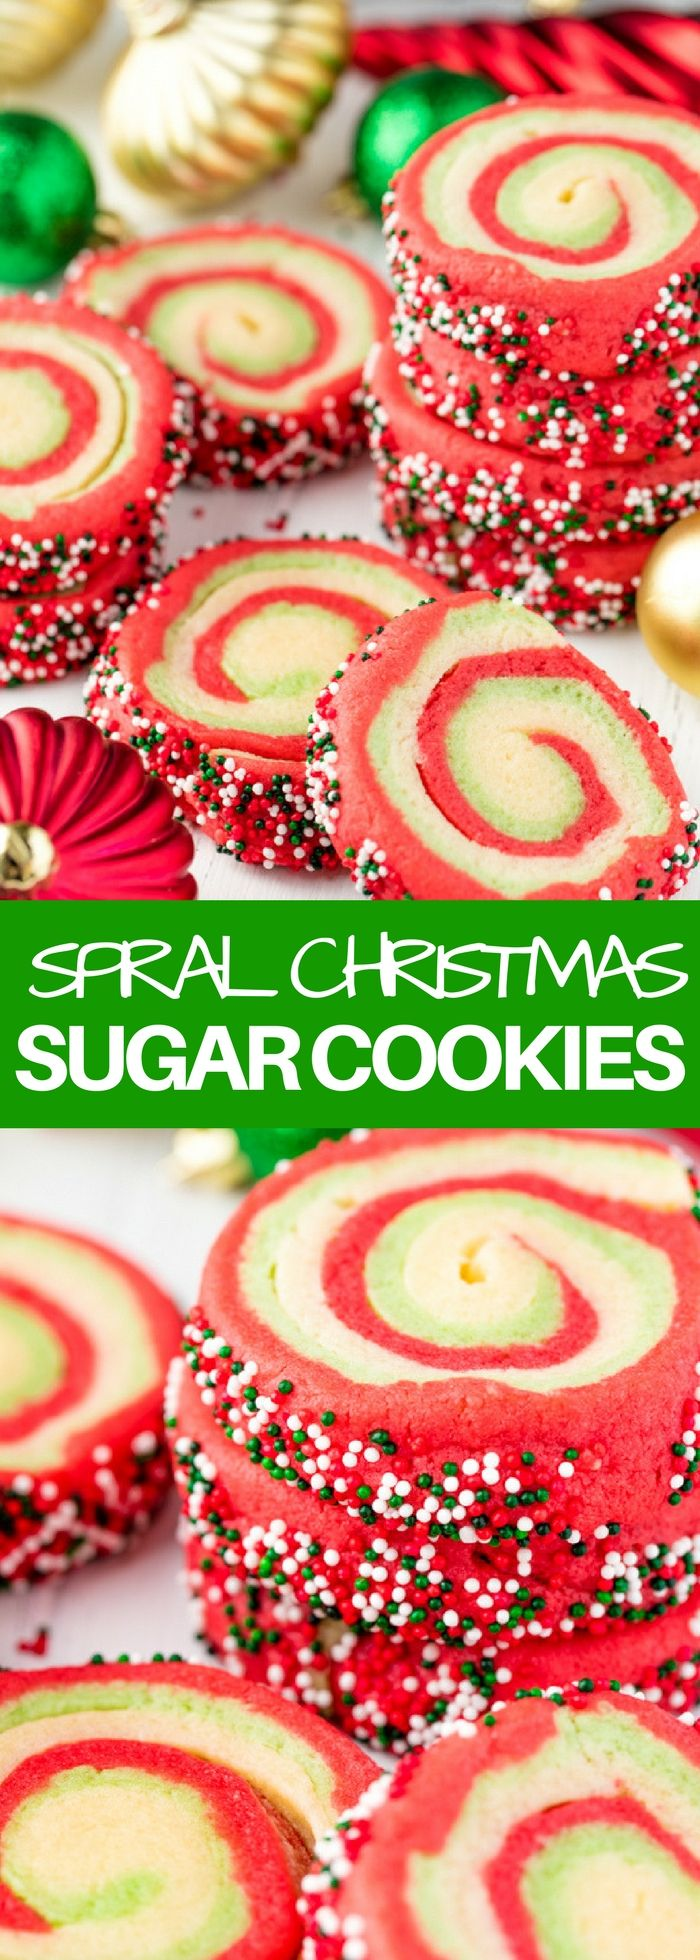 These Spiral Christmas Sugar Cookies are soft and chewy and full of festive colors!   I'm getting all festive today with these spiral sugar cookies. It's all the deliciousness of my usual soft cream cheese sugar cookie, in a spiral colorful festive Christmas version, complete with sprinkles. My kids are in love with these! They...